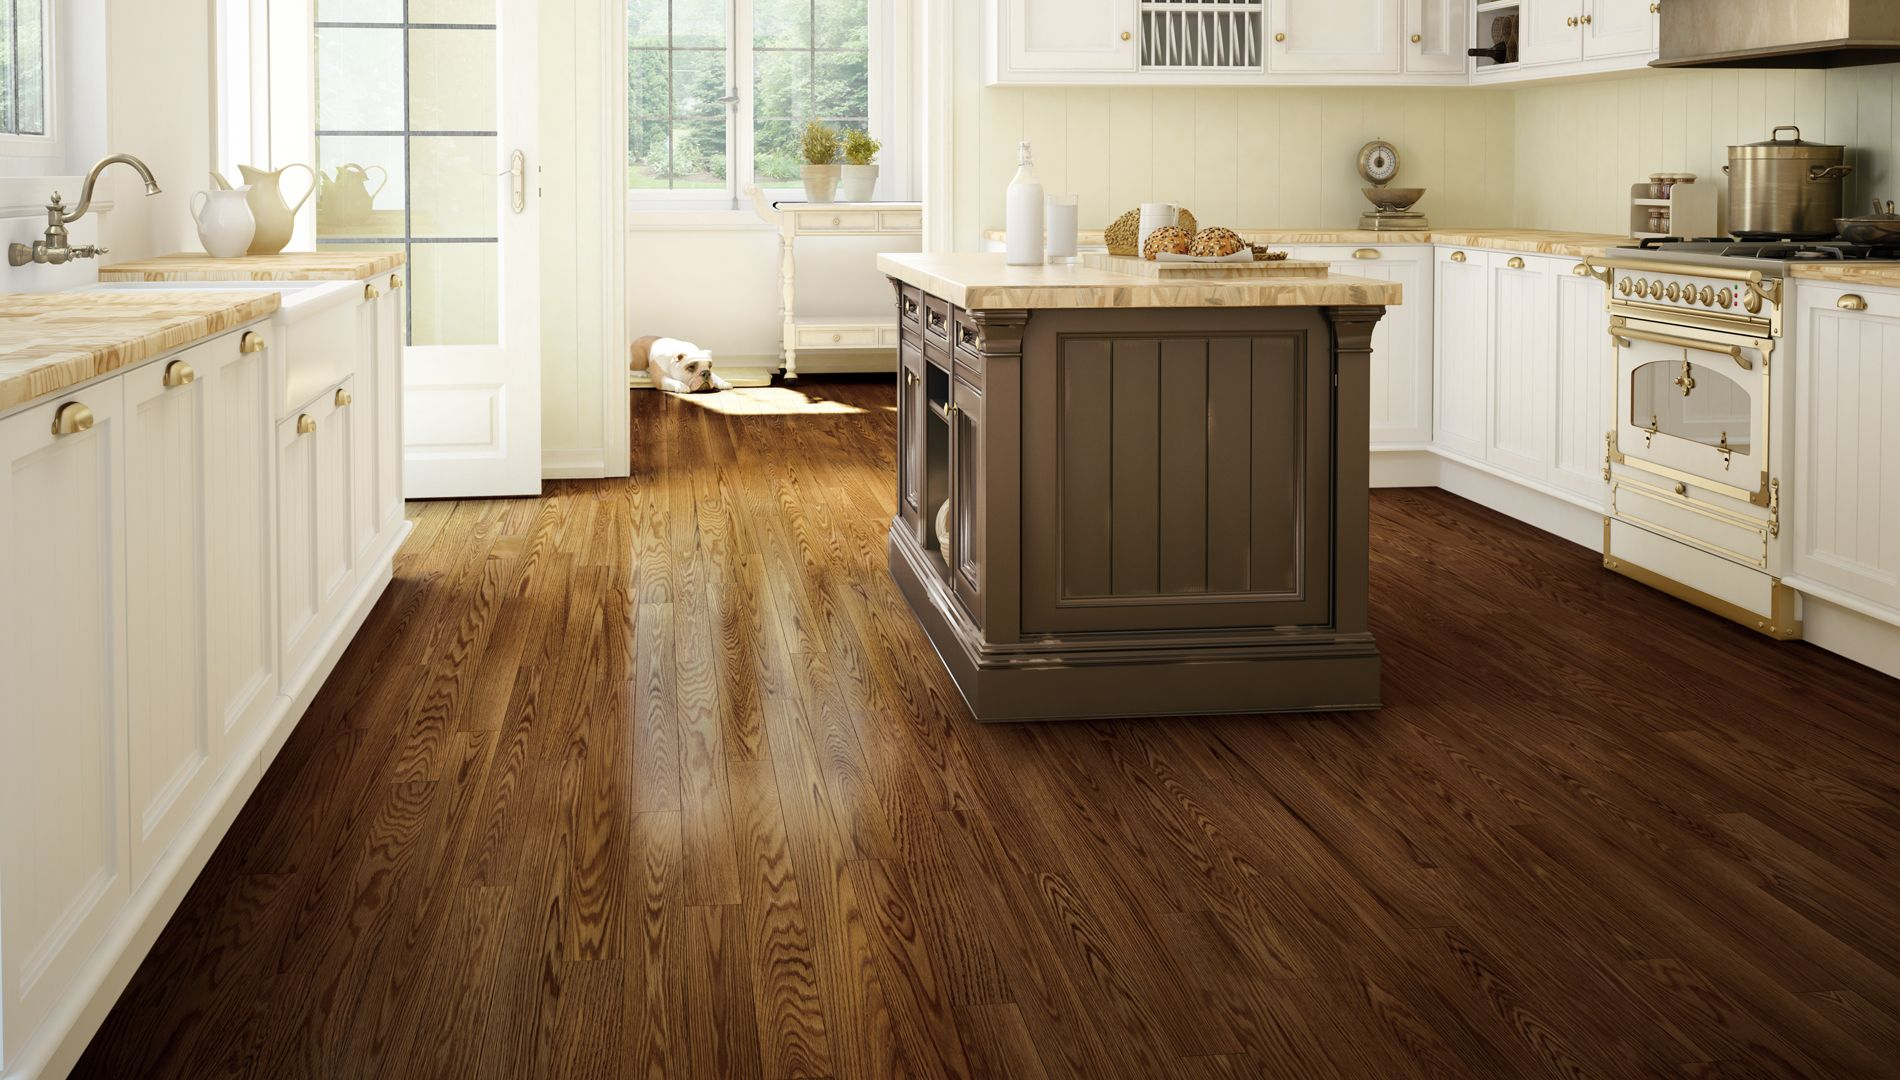 Cigarillo designer red oak antique lauzon hardwood for Wood flooring kitchen ideas